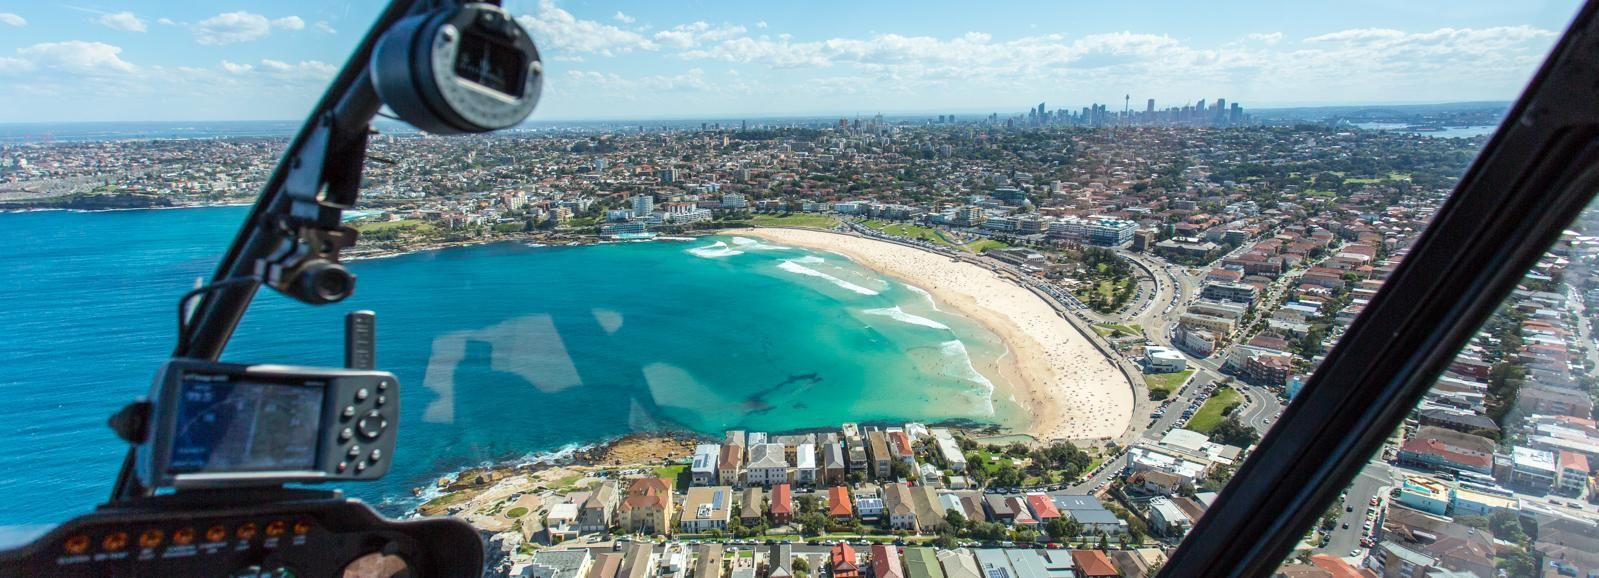 Sydney Harbour: Private Helicopter Flight with Transfer